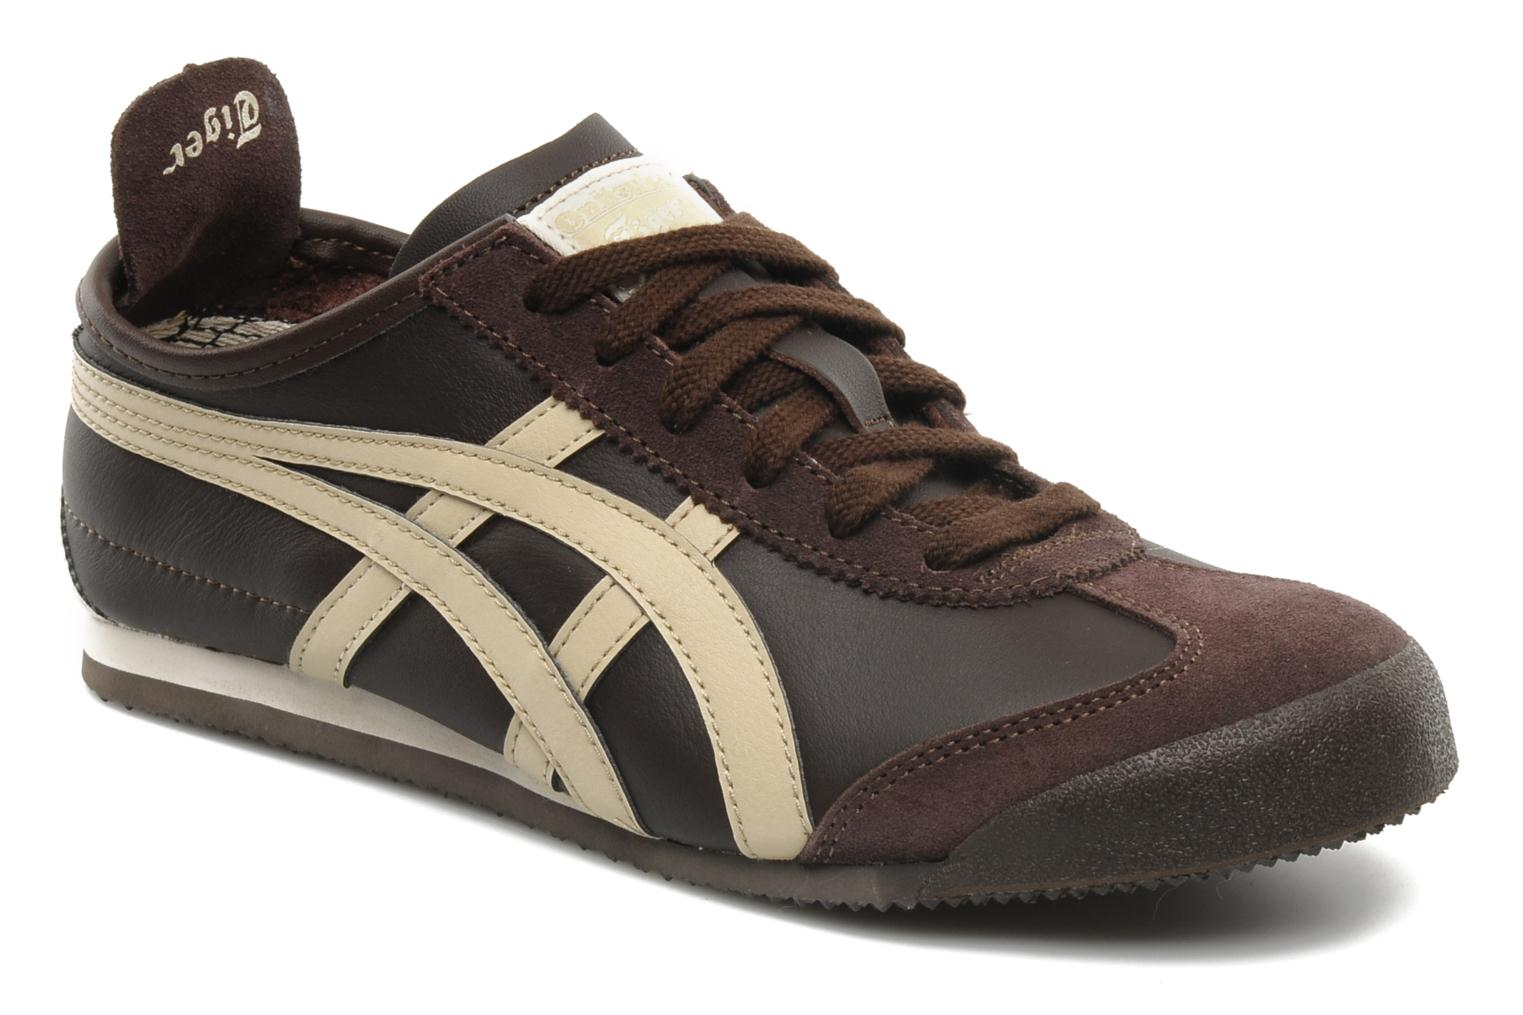 onitsuka tiger mexico 66 trainers in brown at 112398. Black Bedroom Furniture Sets. Home Design Ideas